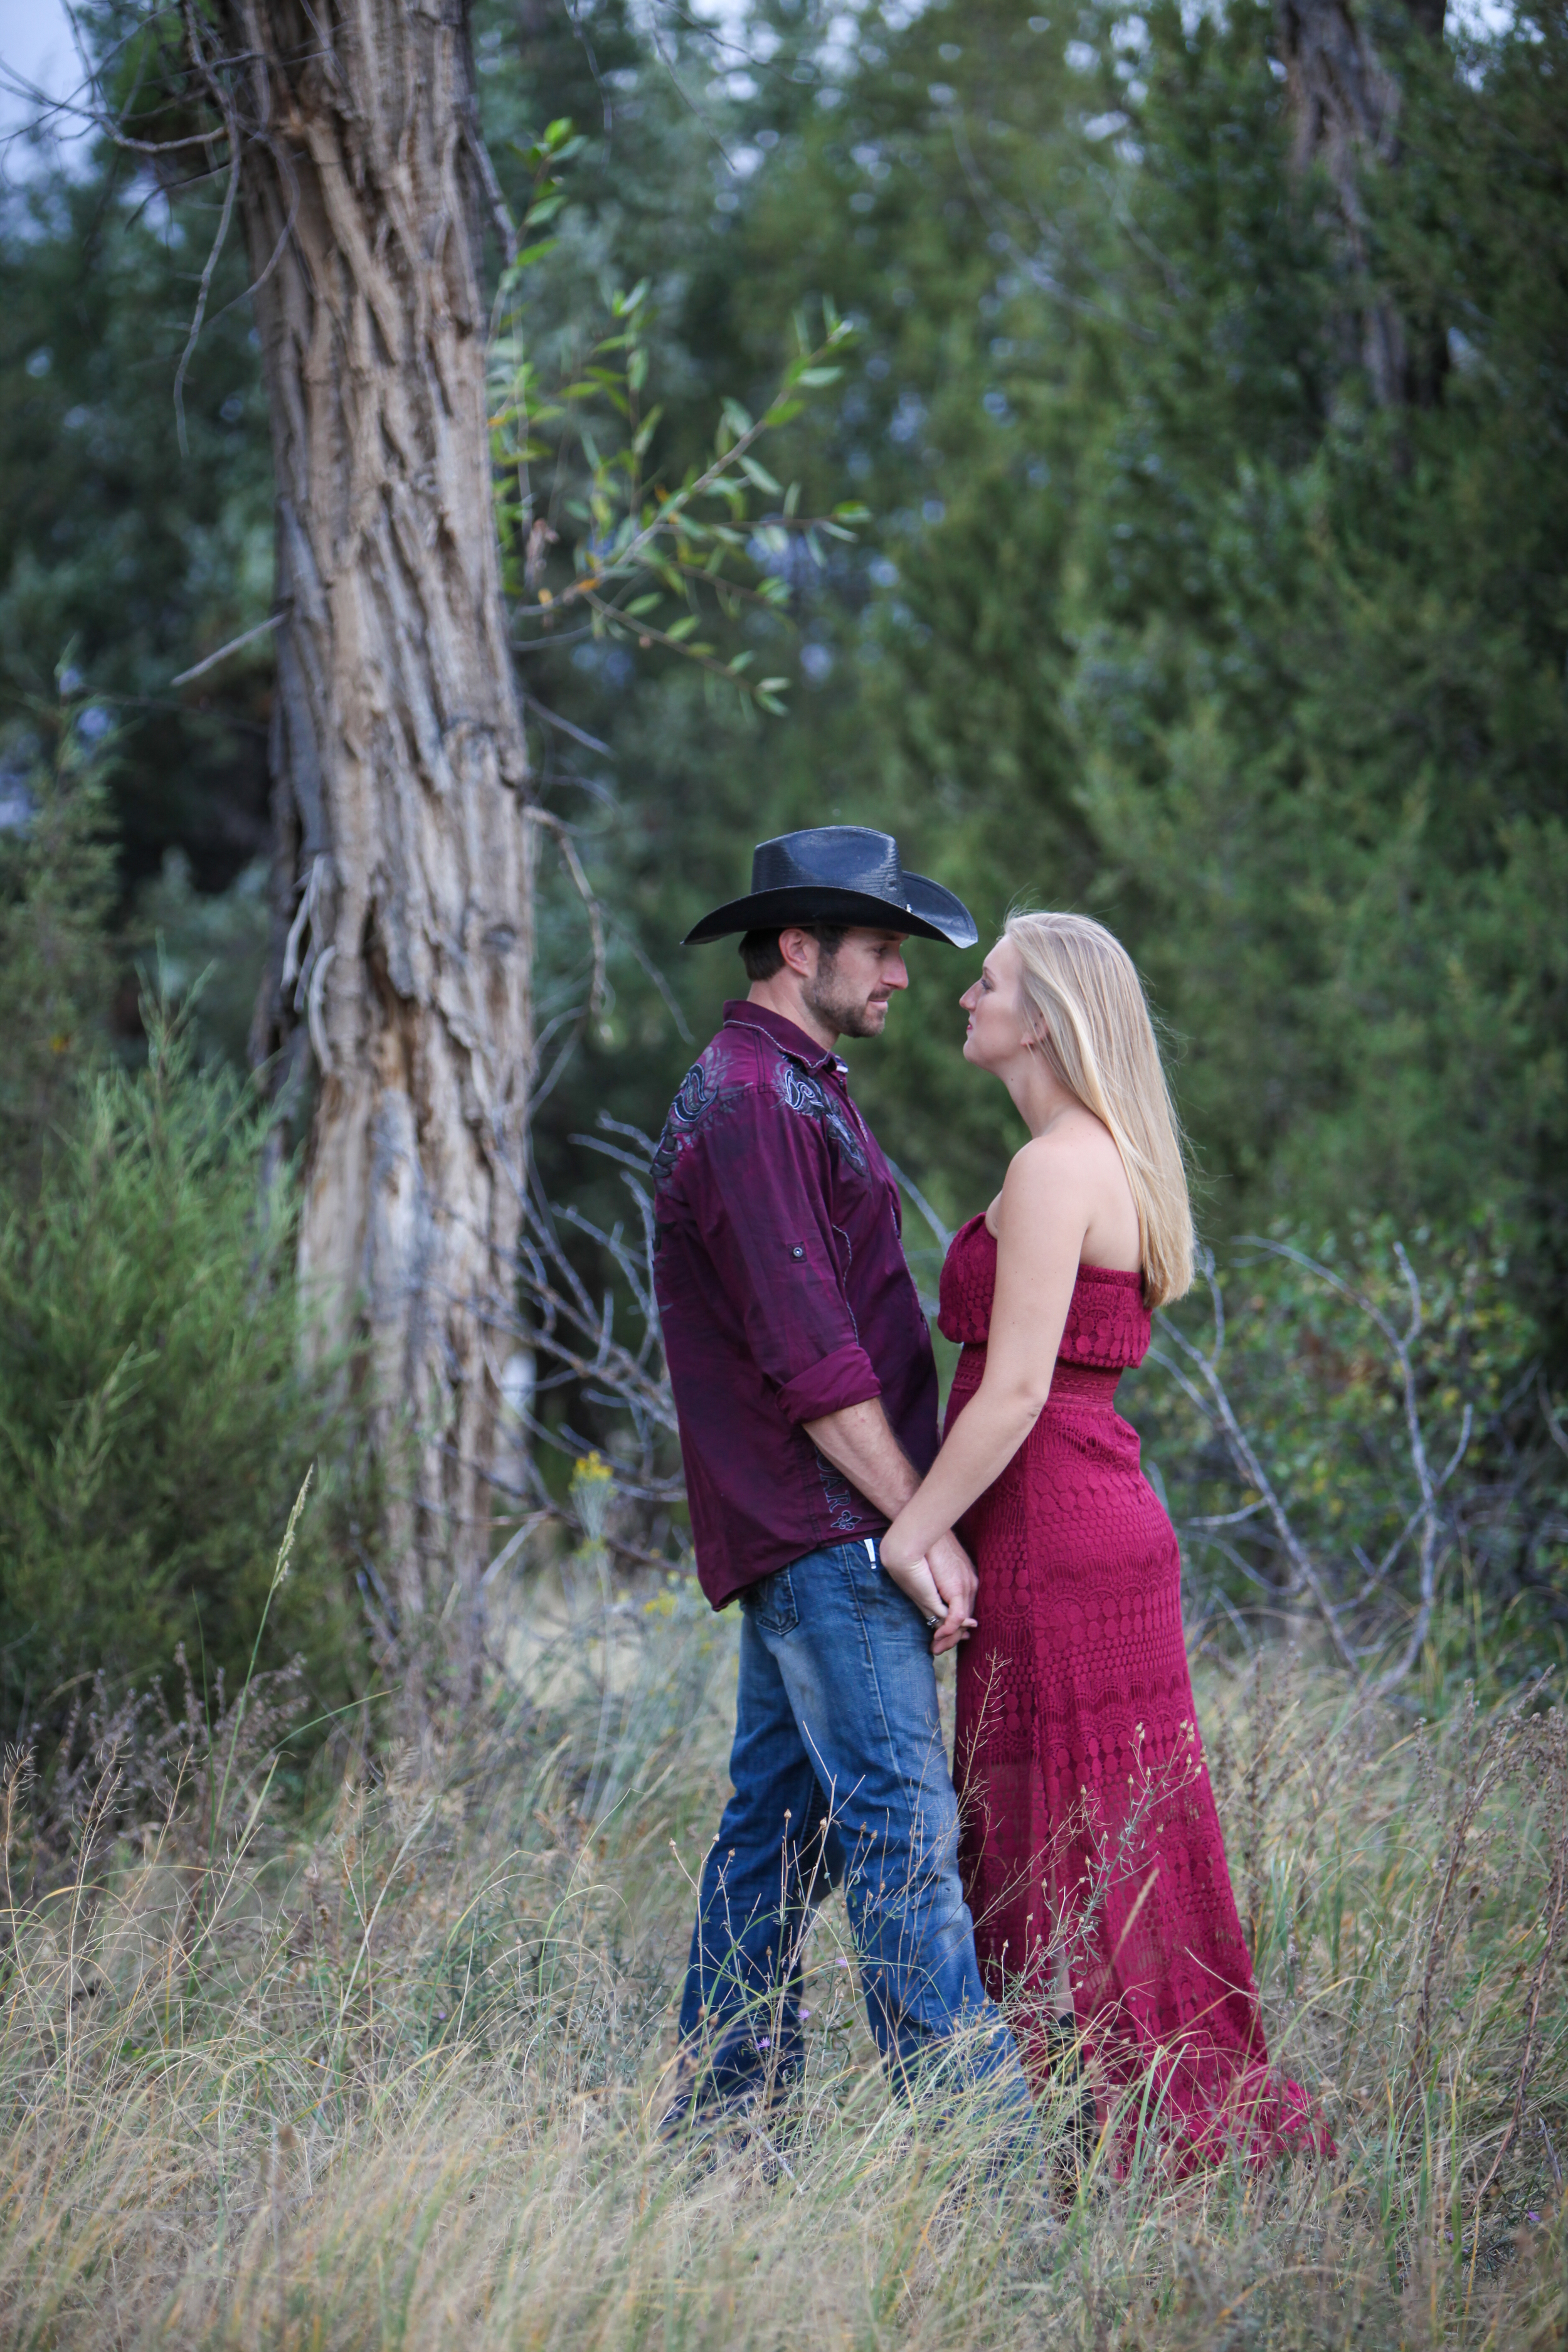 Young couple in a beautiful outdoor location - Val Westover Photography - Orange County, California & Salt Lake City, Utah